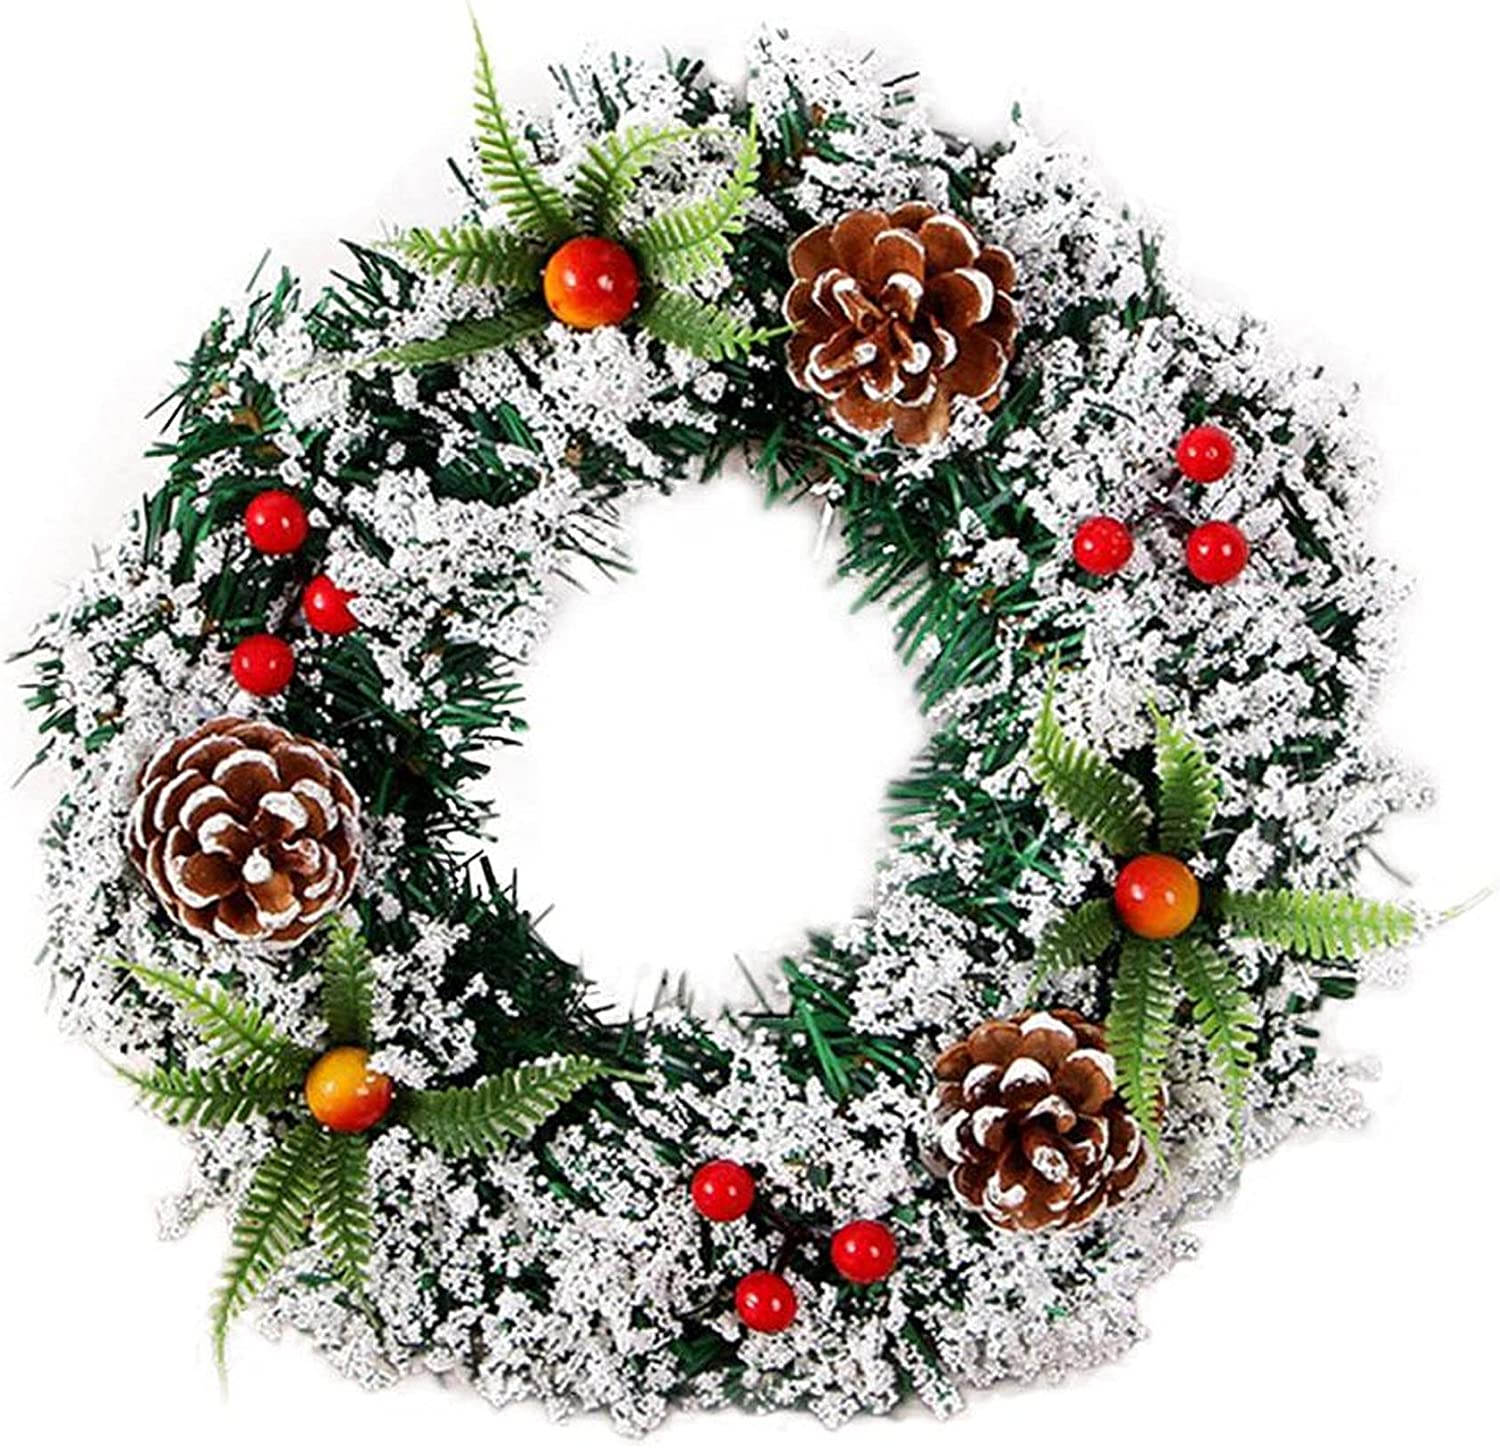 DSYLAI Christmas Max 80% Louisville-Jefferson County Mall OFF Festival Spruce Wreath 7.9inch 20cm Chr Merry